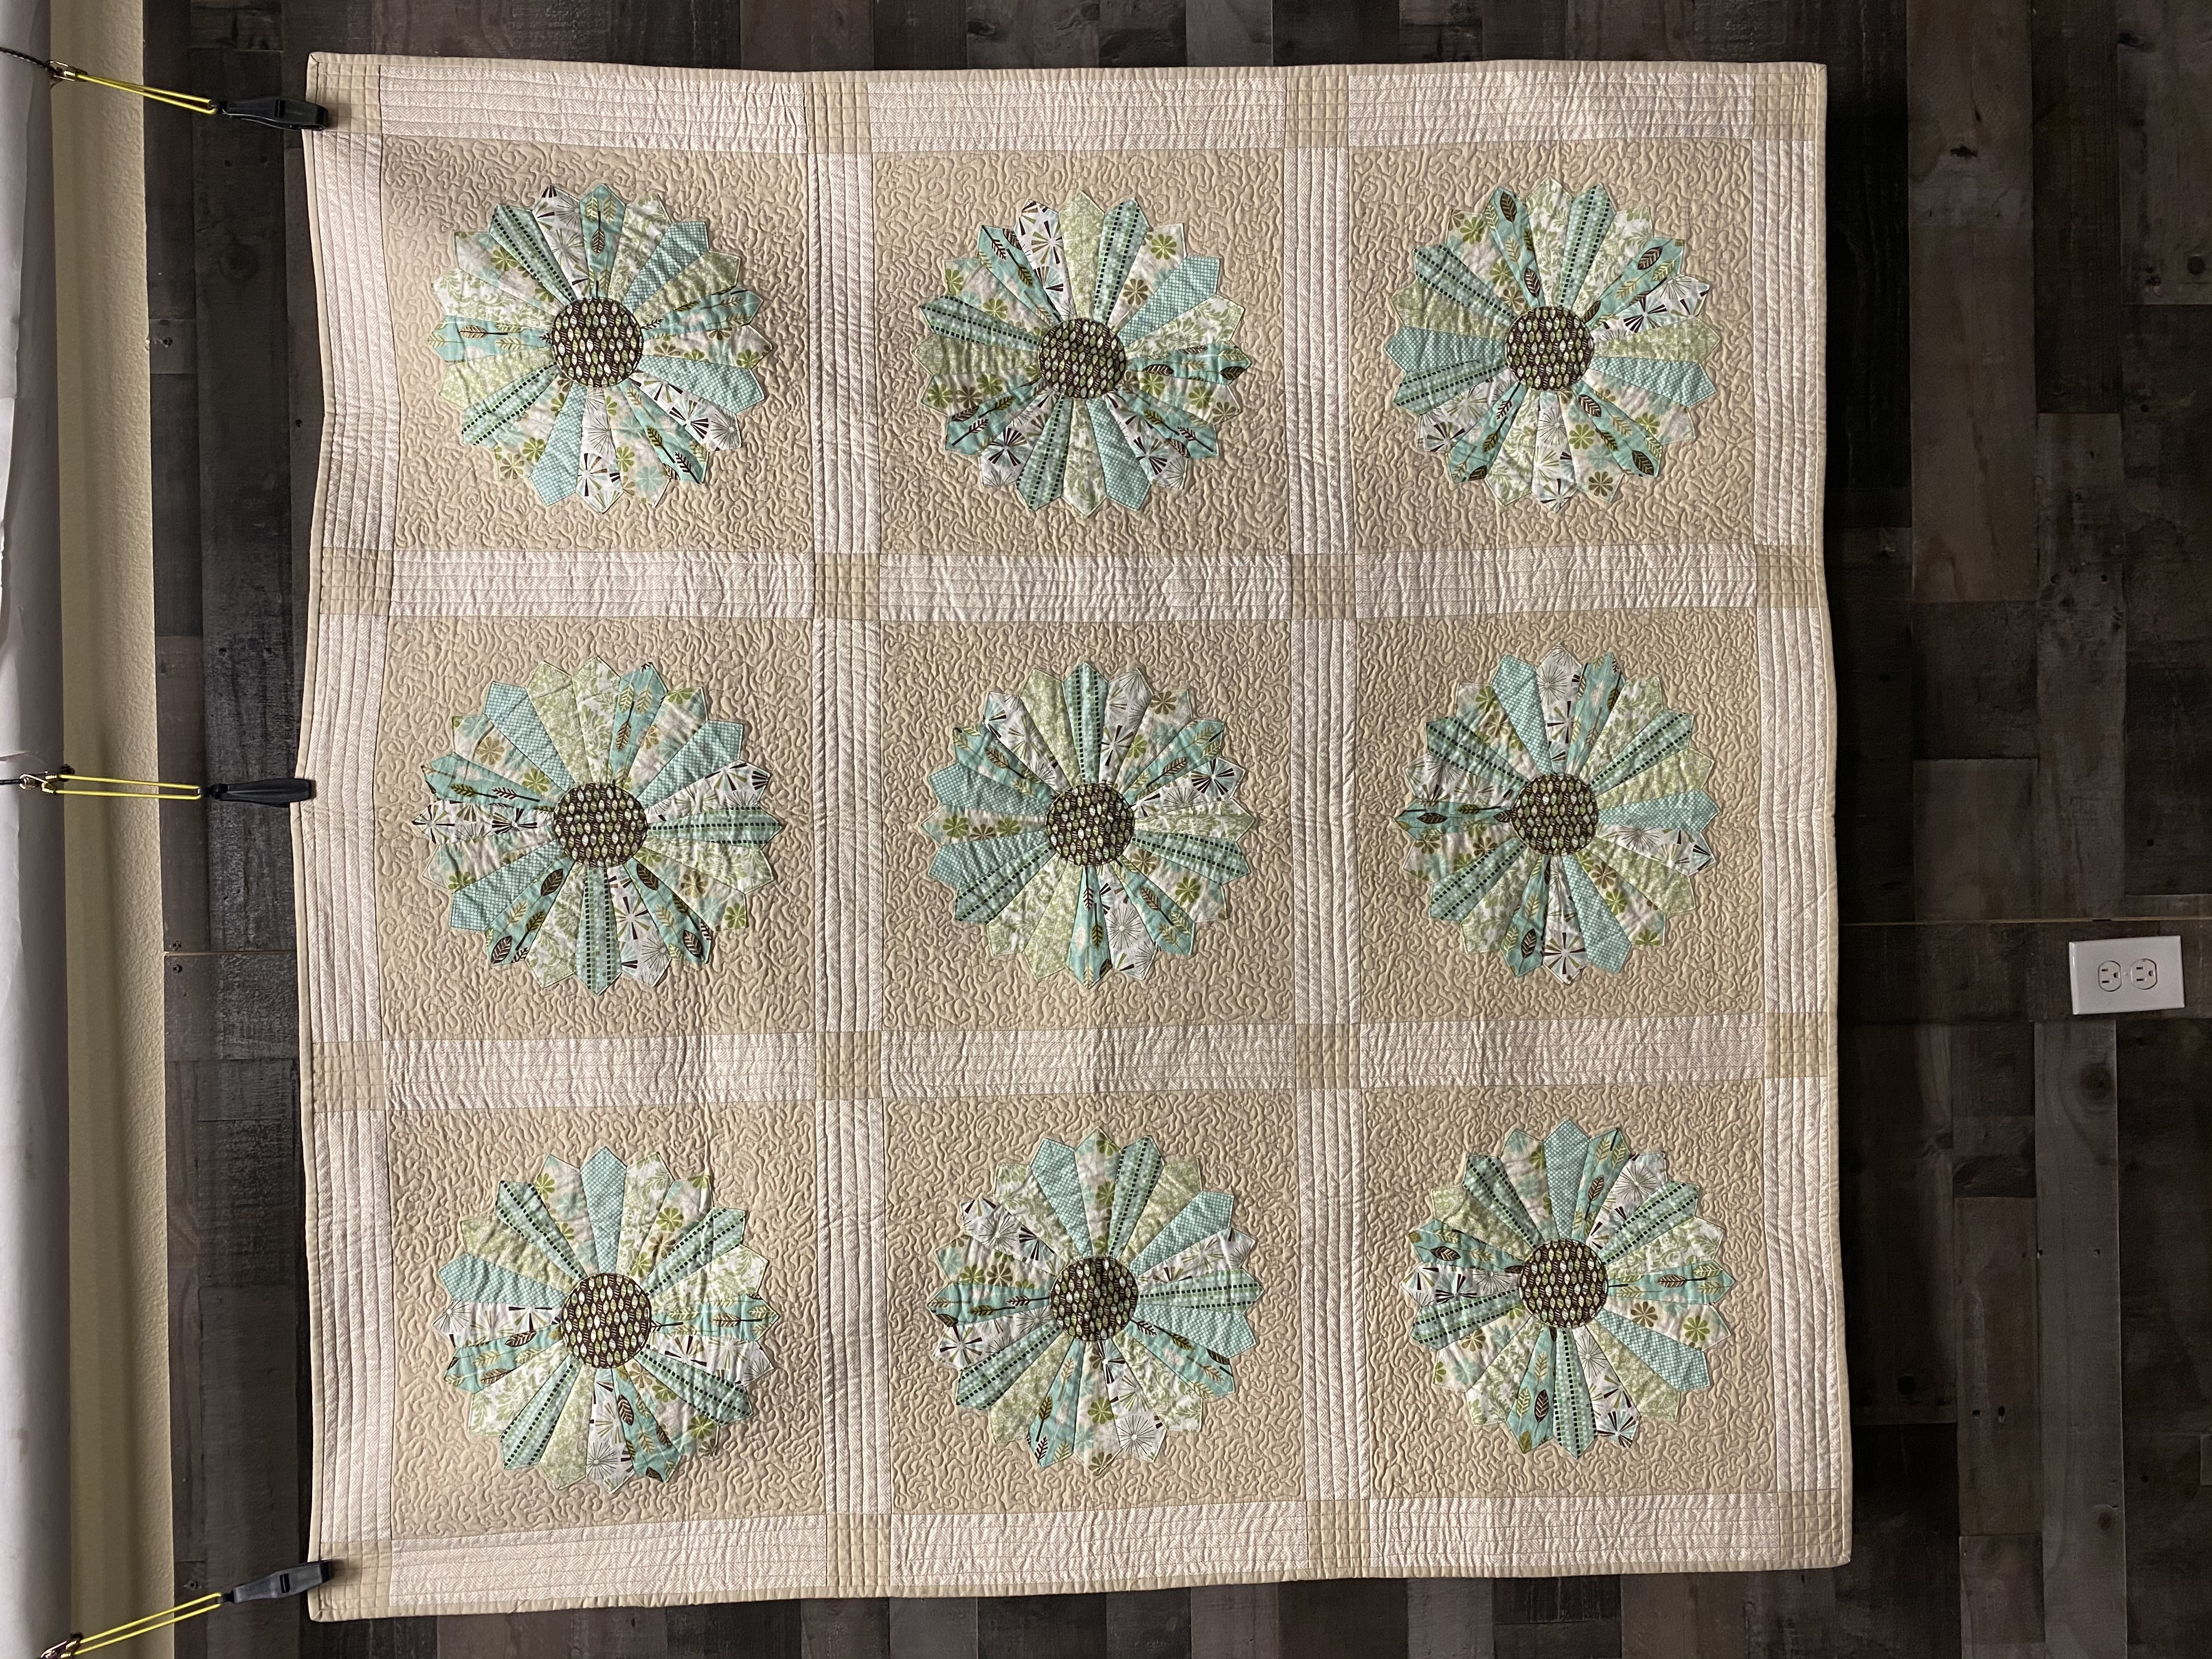 a.Full quilt front